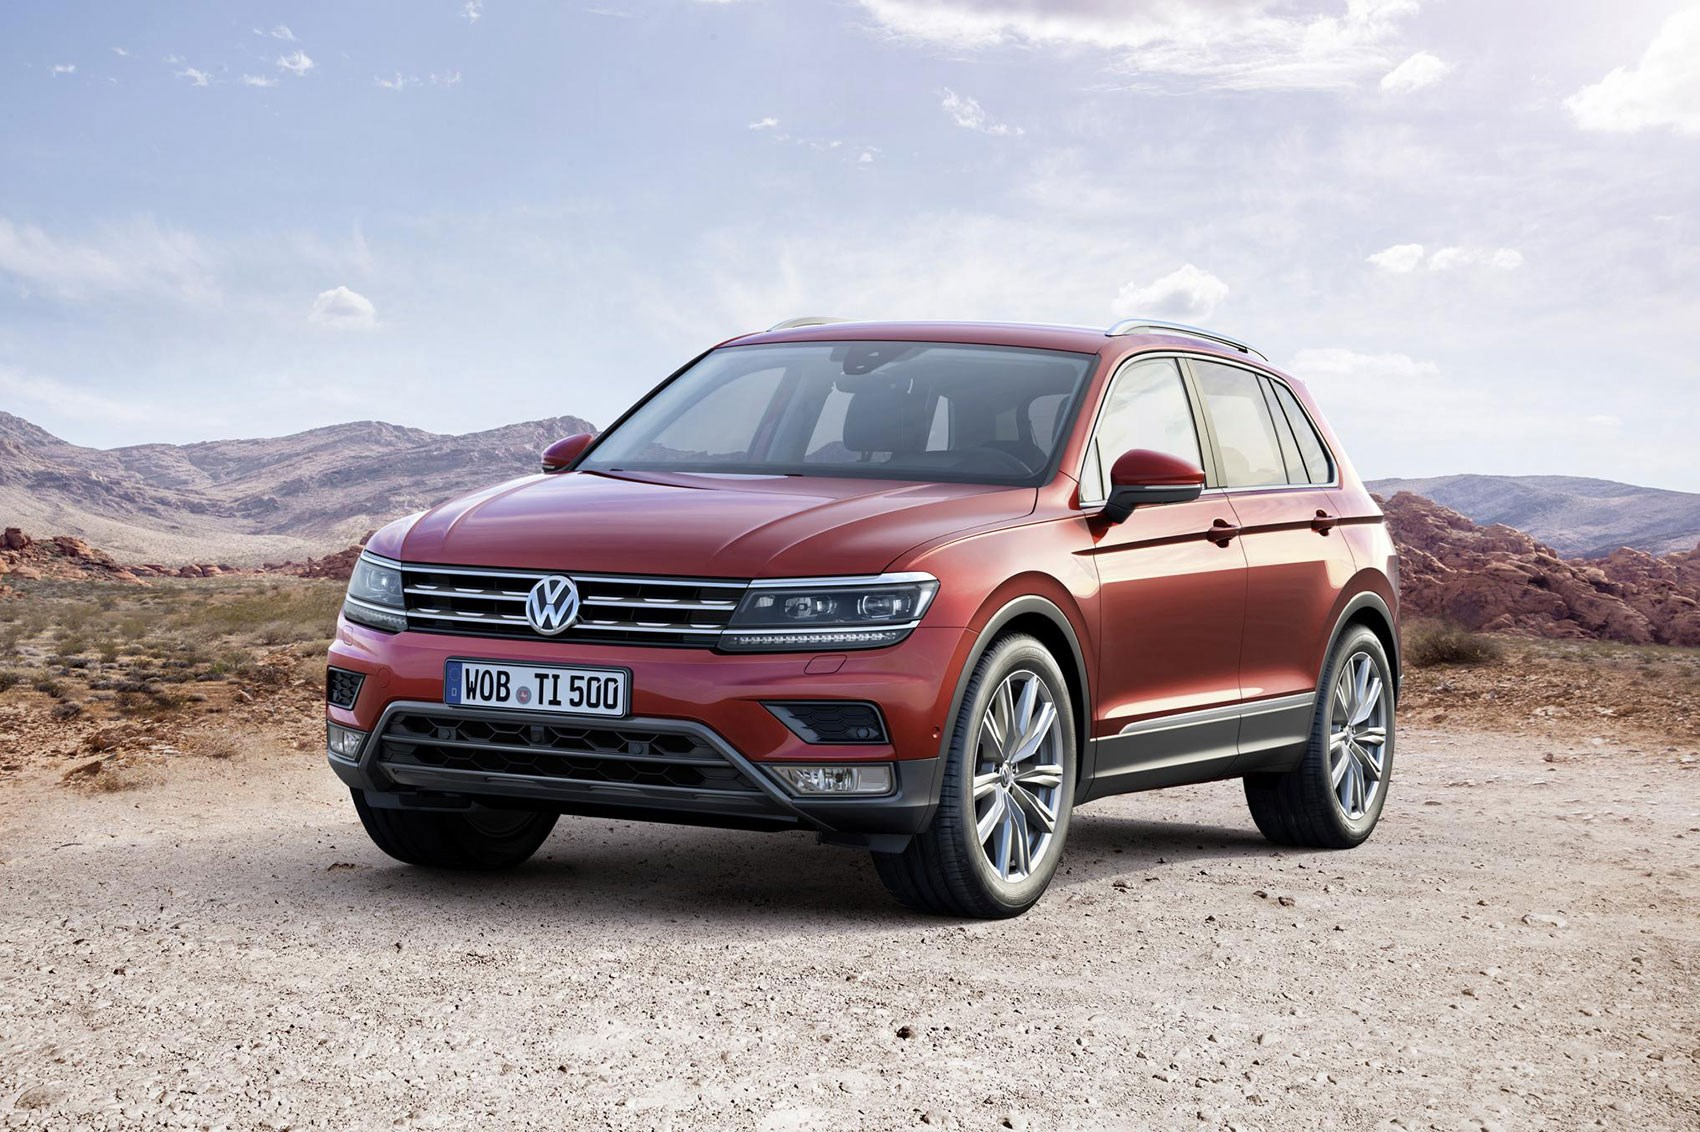 New VW Tiguan crossover bows in - with solar-panelled GTE ...